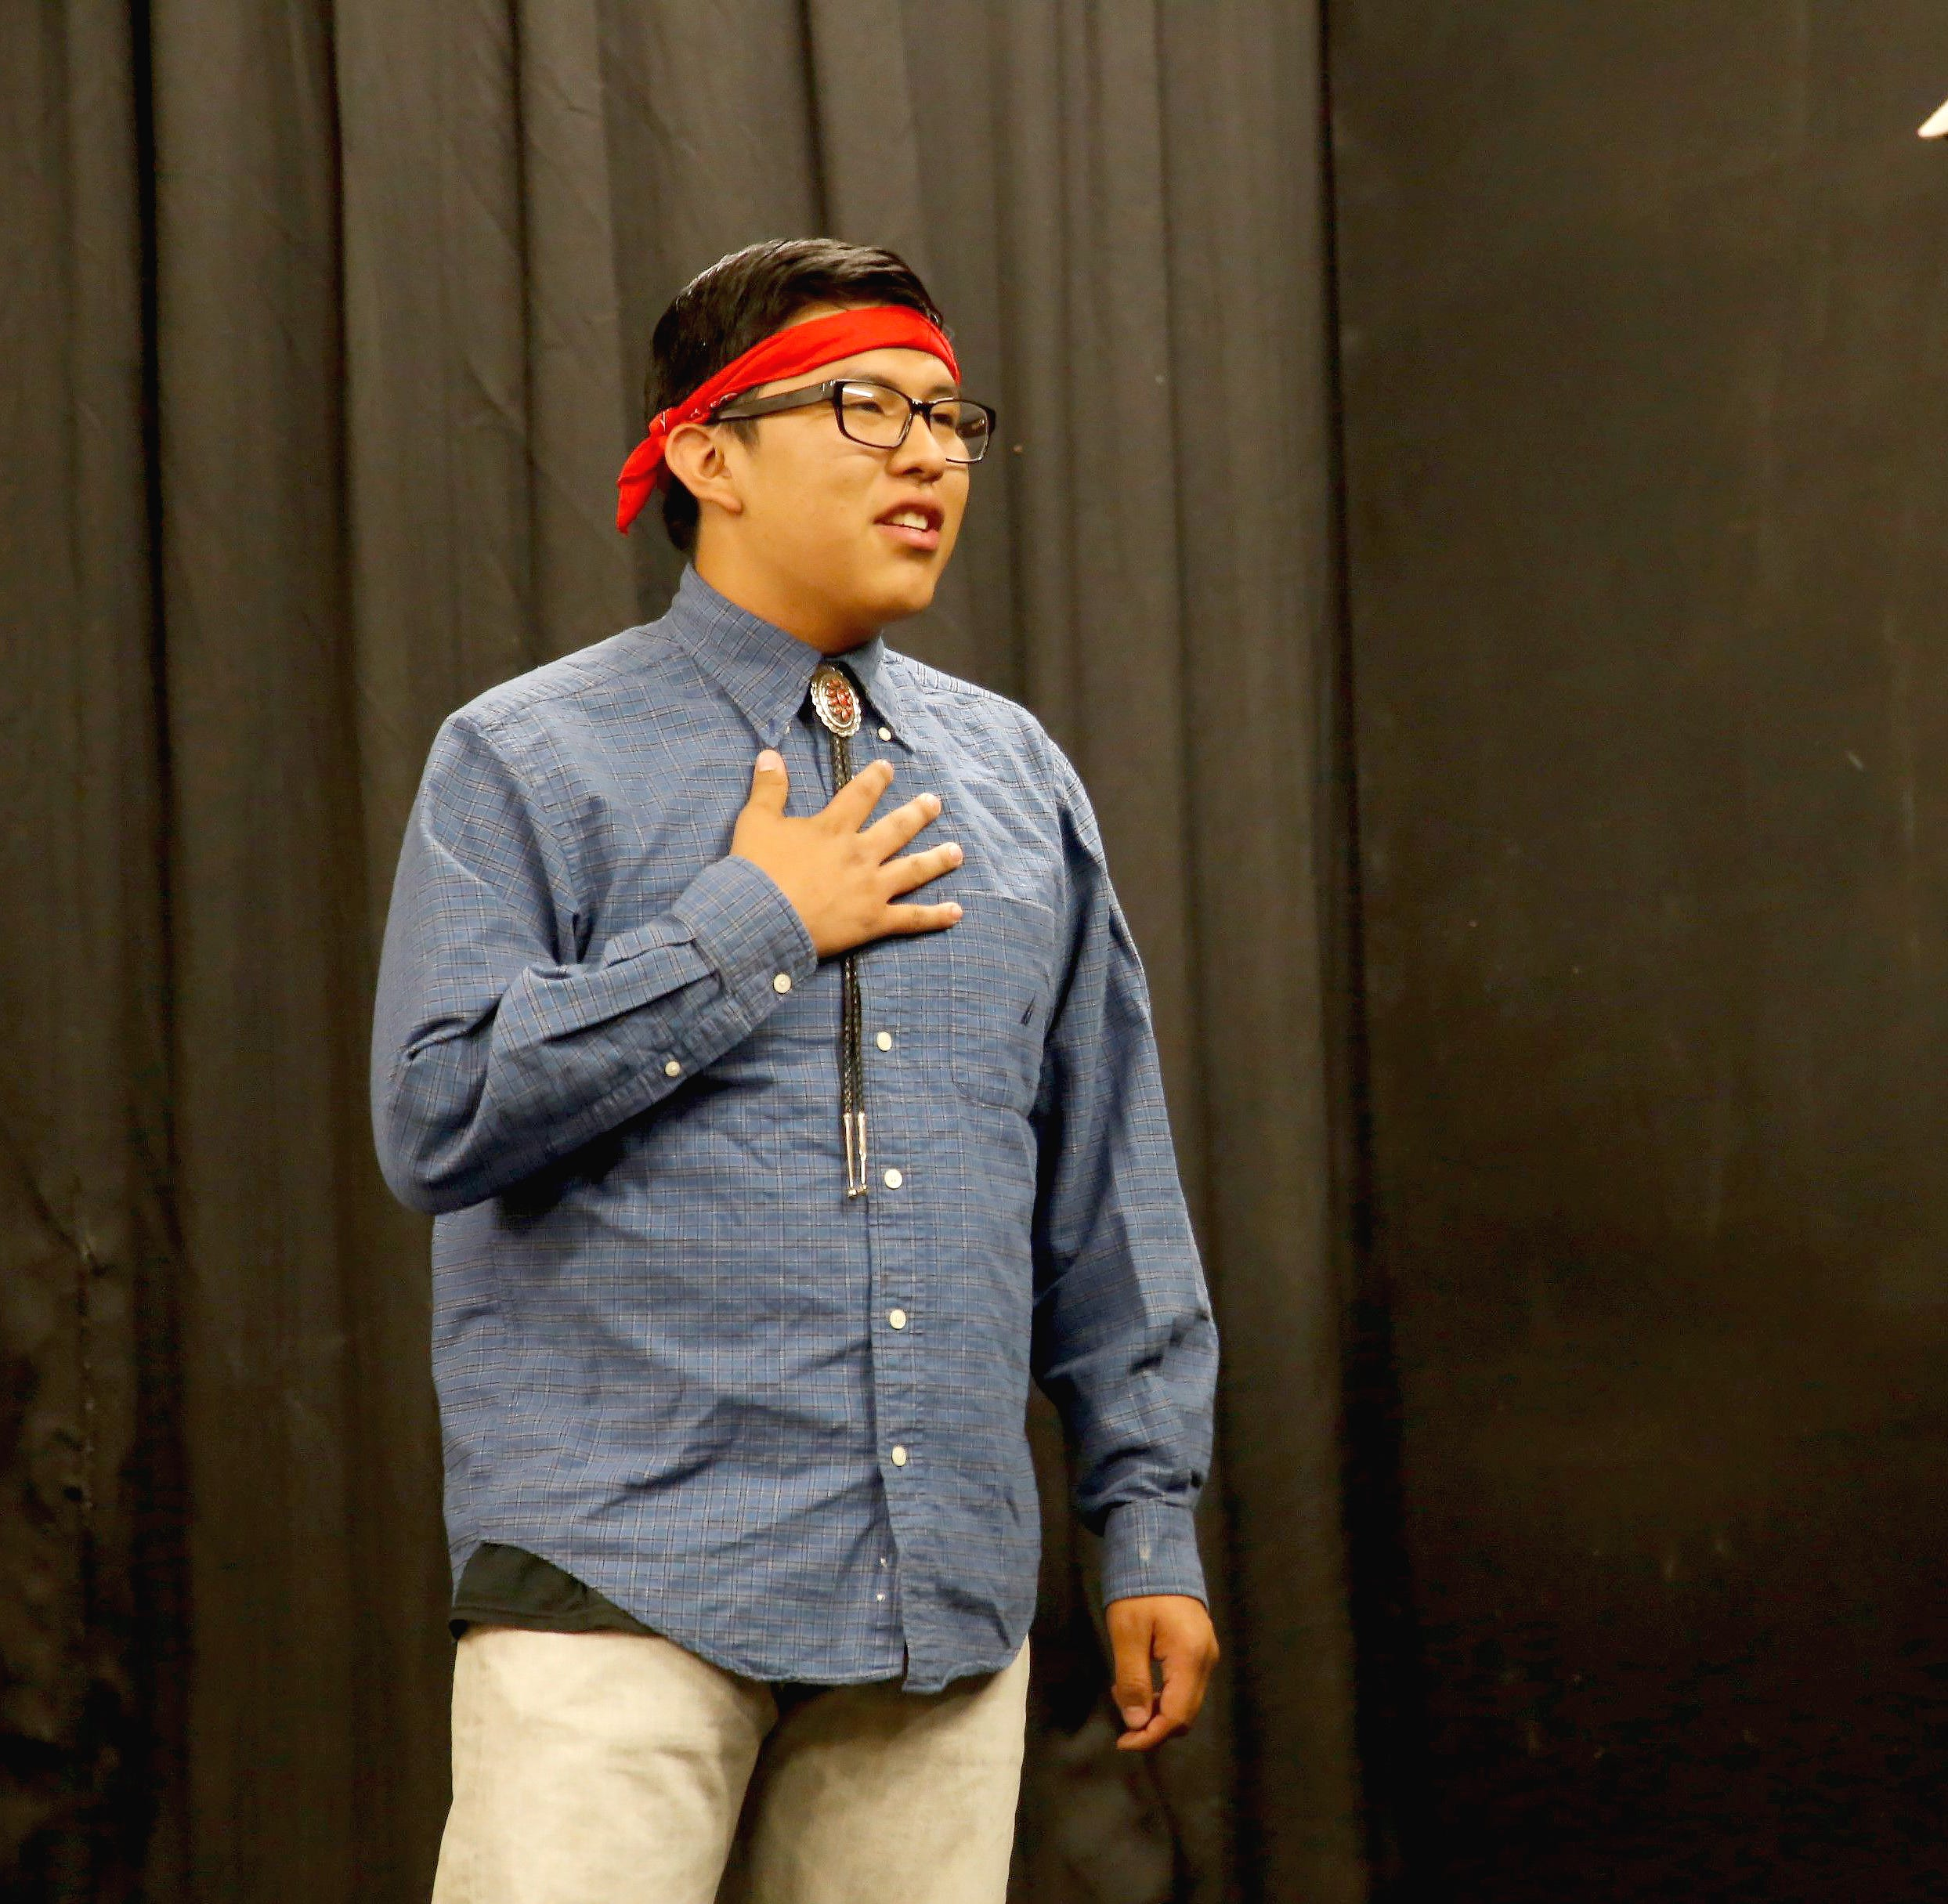 'Some of the most incredible kids': High school class brings theater to Newcomb